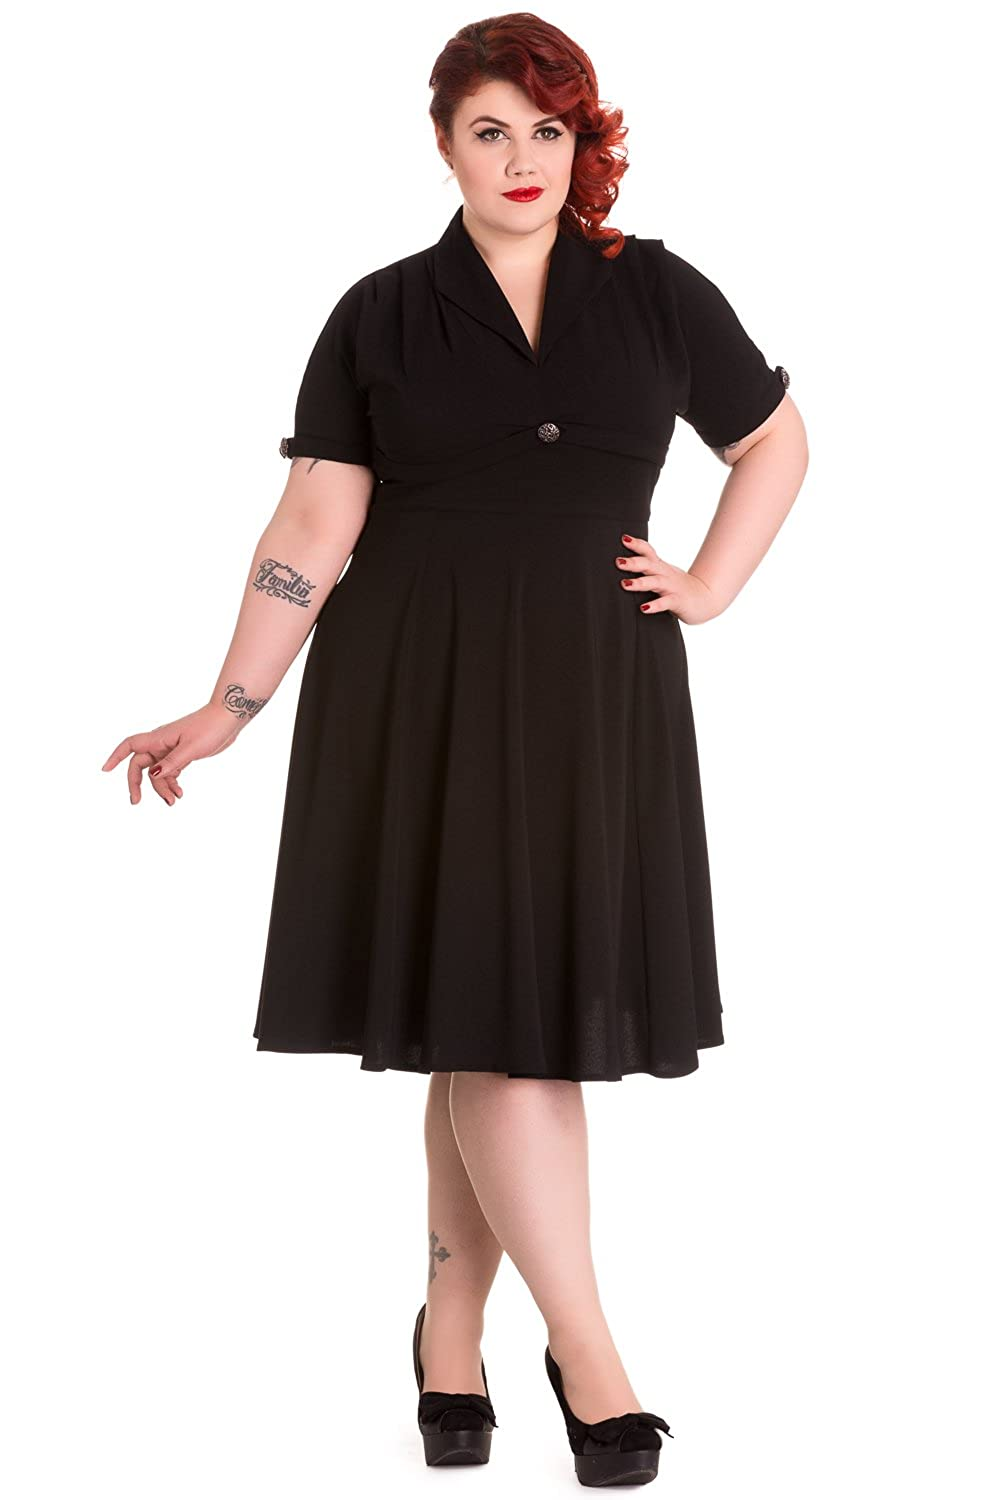 1960s Plus Size Dresses & Retro Mod Fashion Hell Bunny Plus Size 60s Vintage Style Jocelyn Flare PartyDress $87.00 AT vintagedancer.com